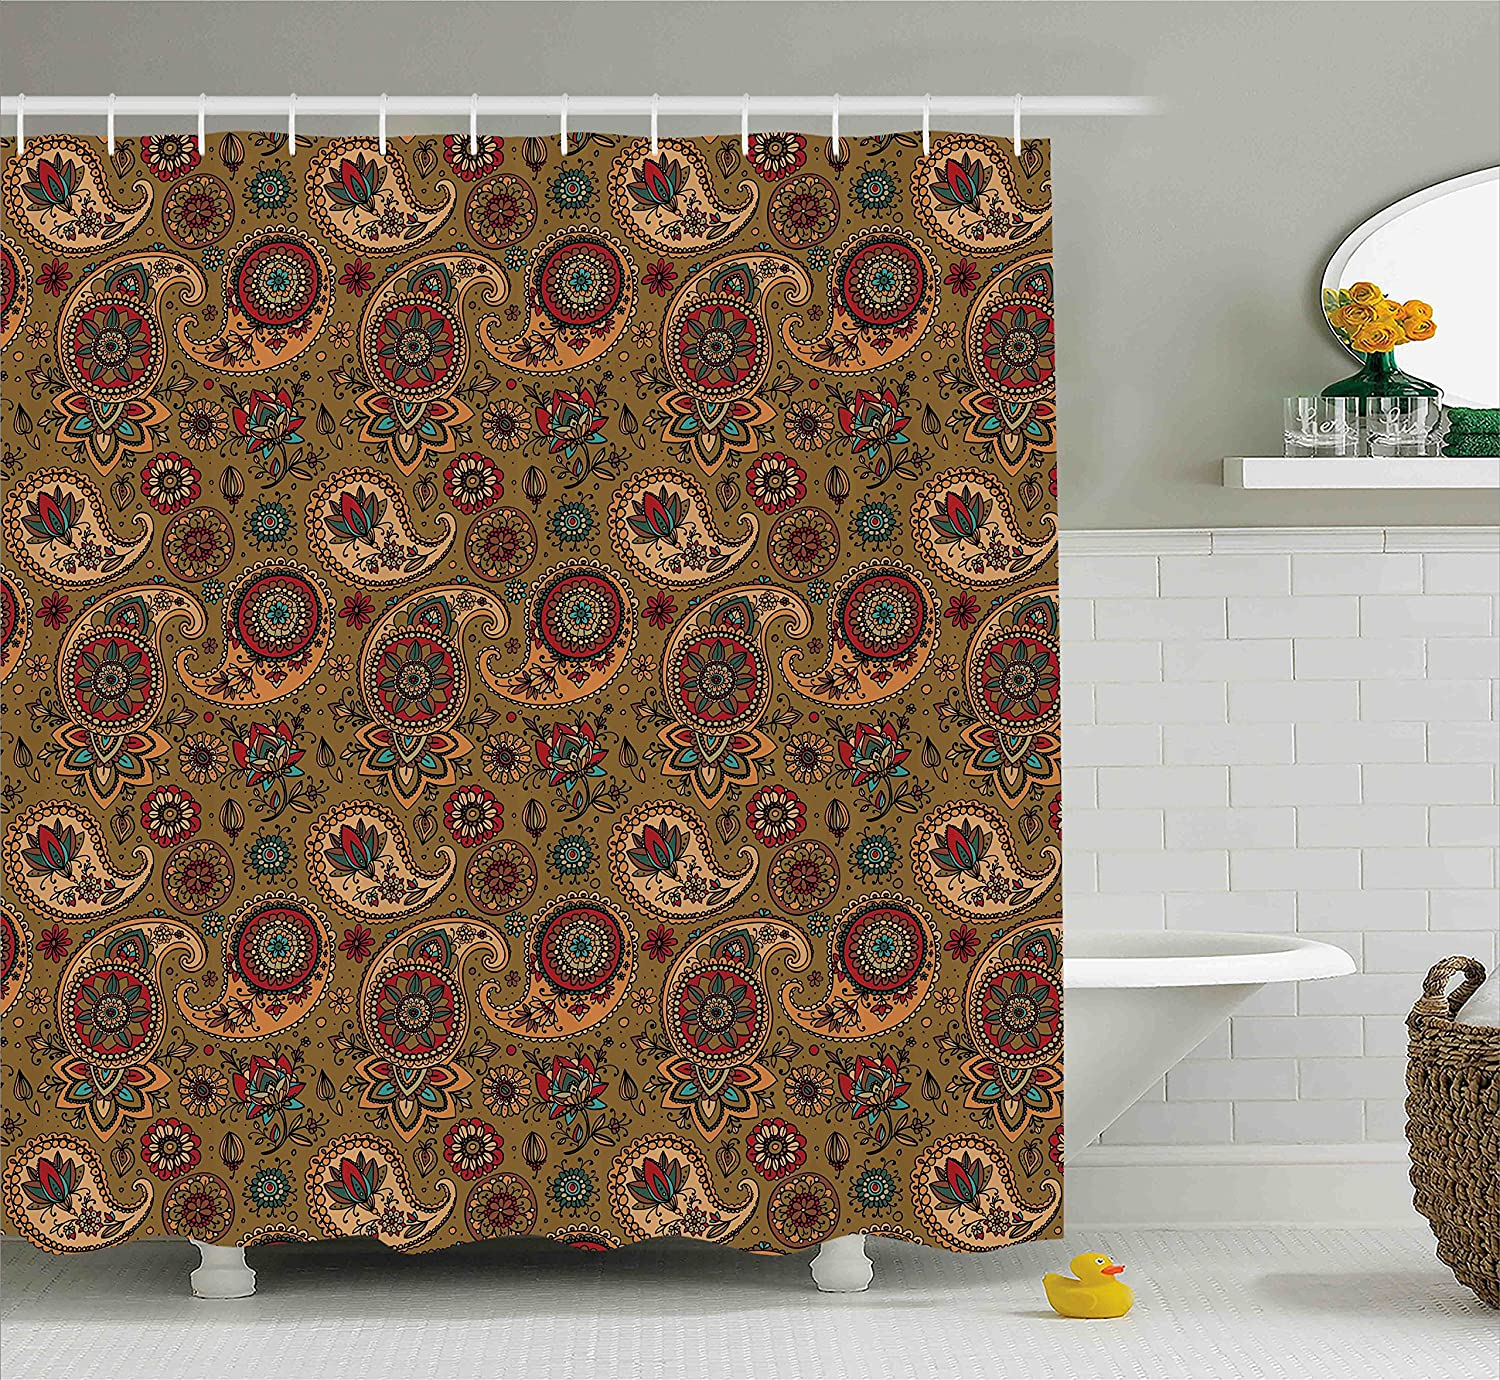 Vintage Inspired Multicolored Leaf Authentic Flower Motif in Earth Tones Print Ambesonne Paisley Shower Curtain 70 Inches Fabric Bathroom Decor Set with Hooks Multicolor